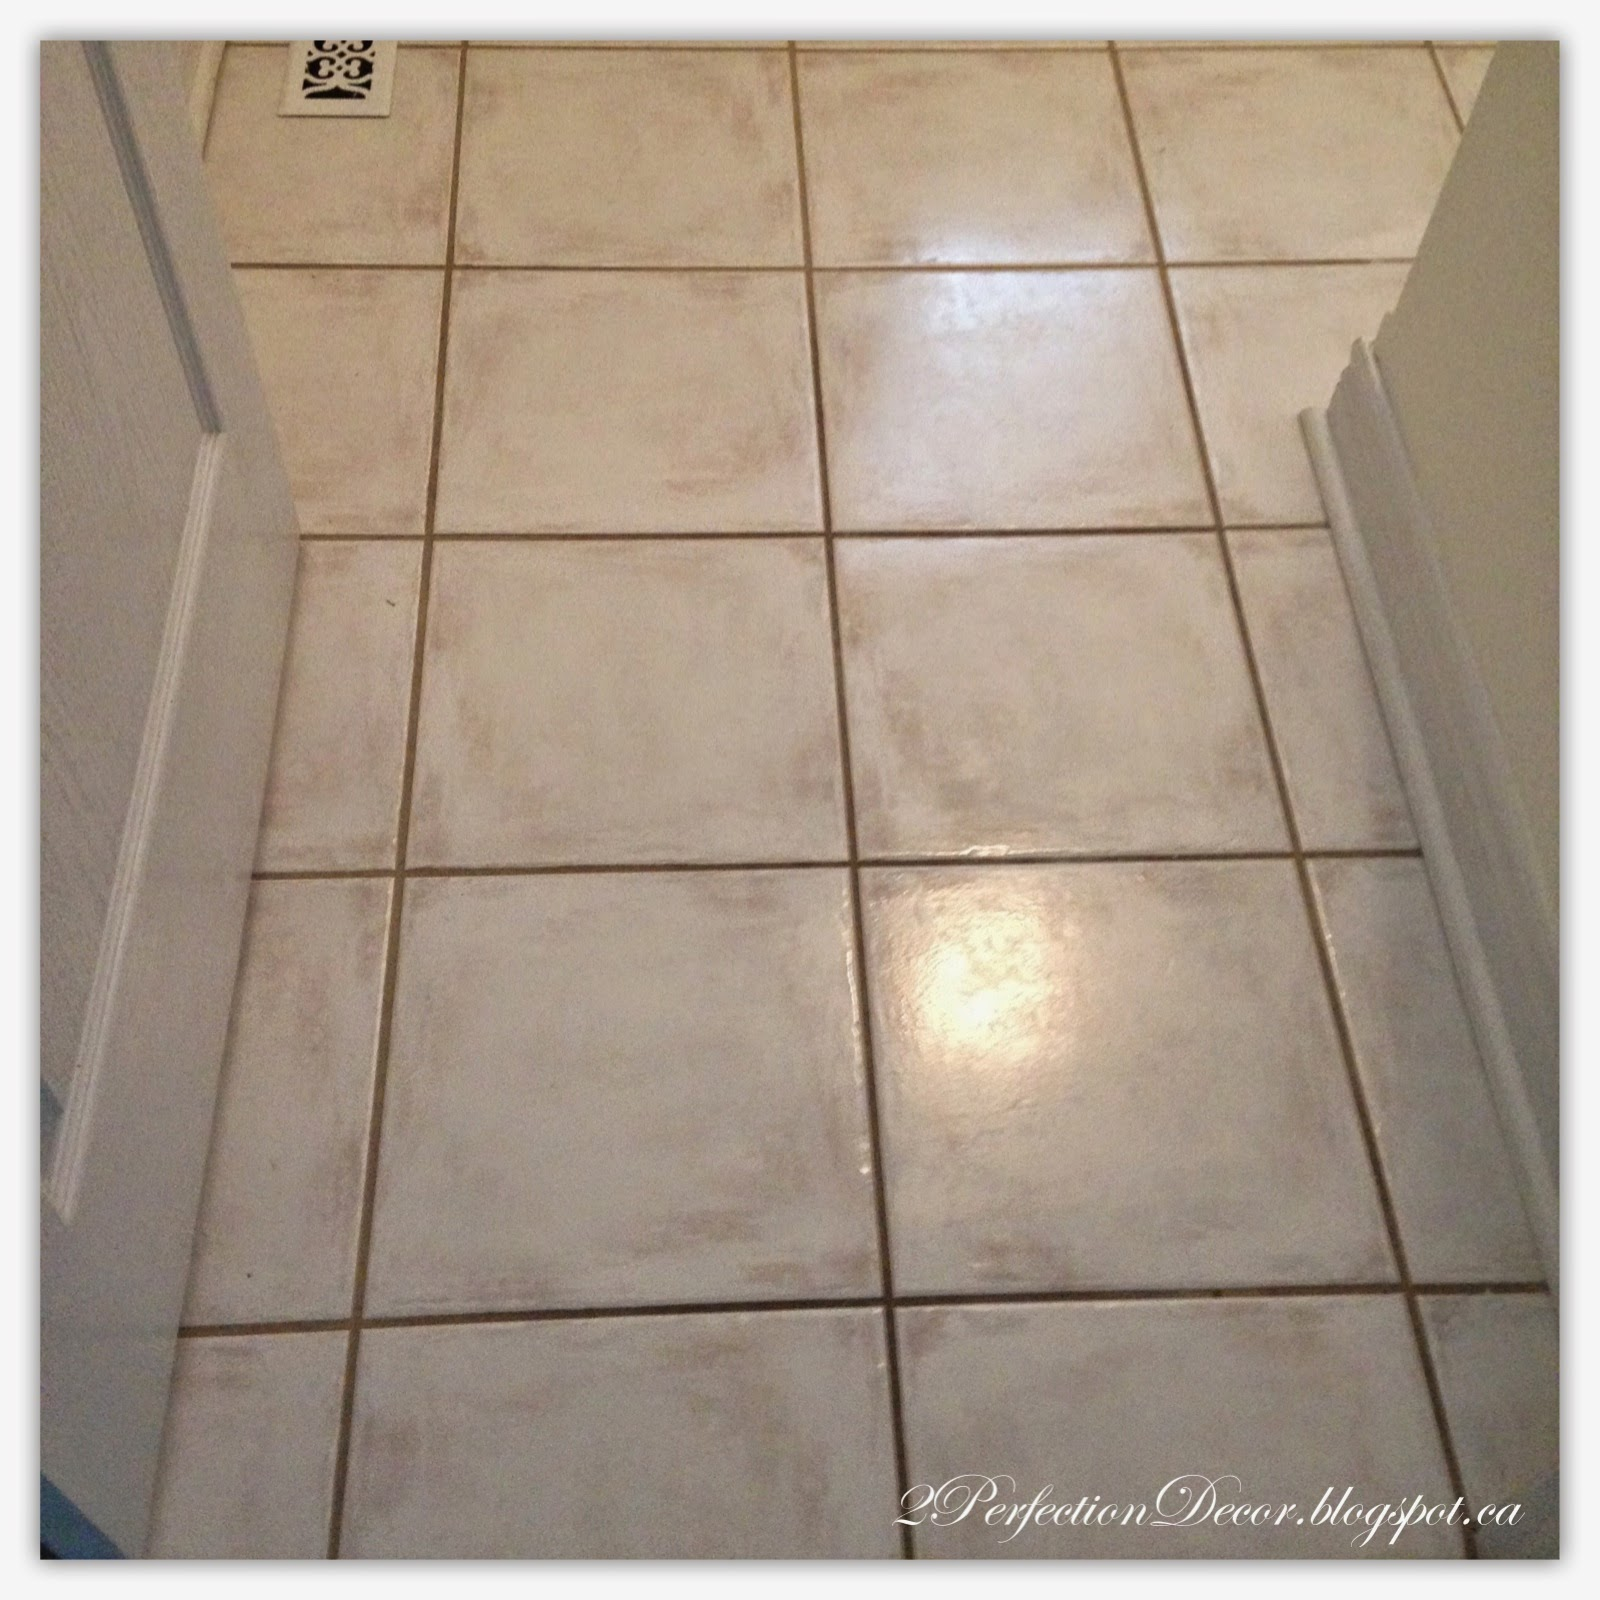 2perfection decor how to paint dark grout 39 white 39 for How do you clean white grout